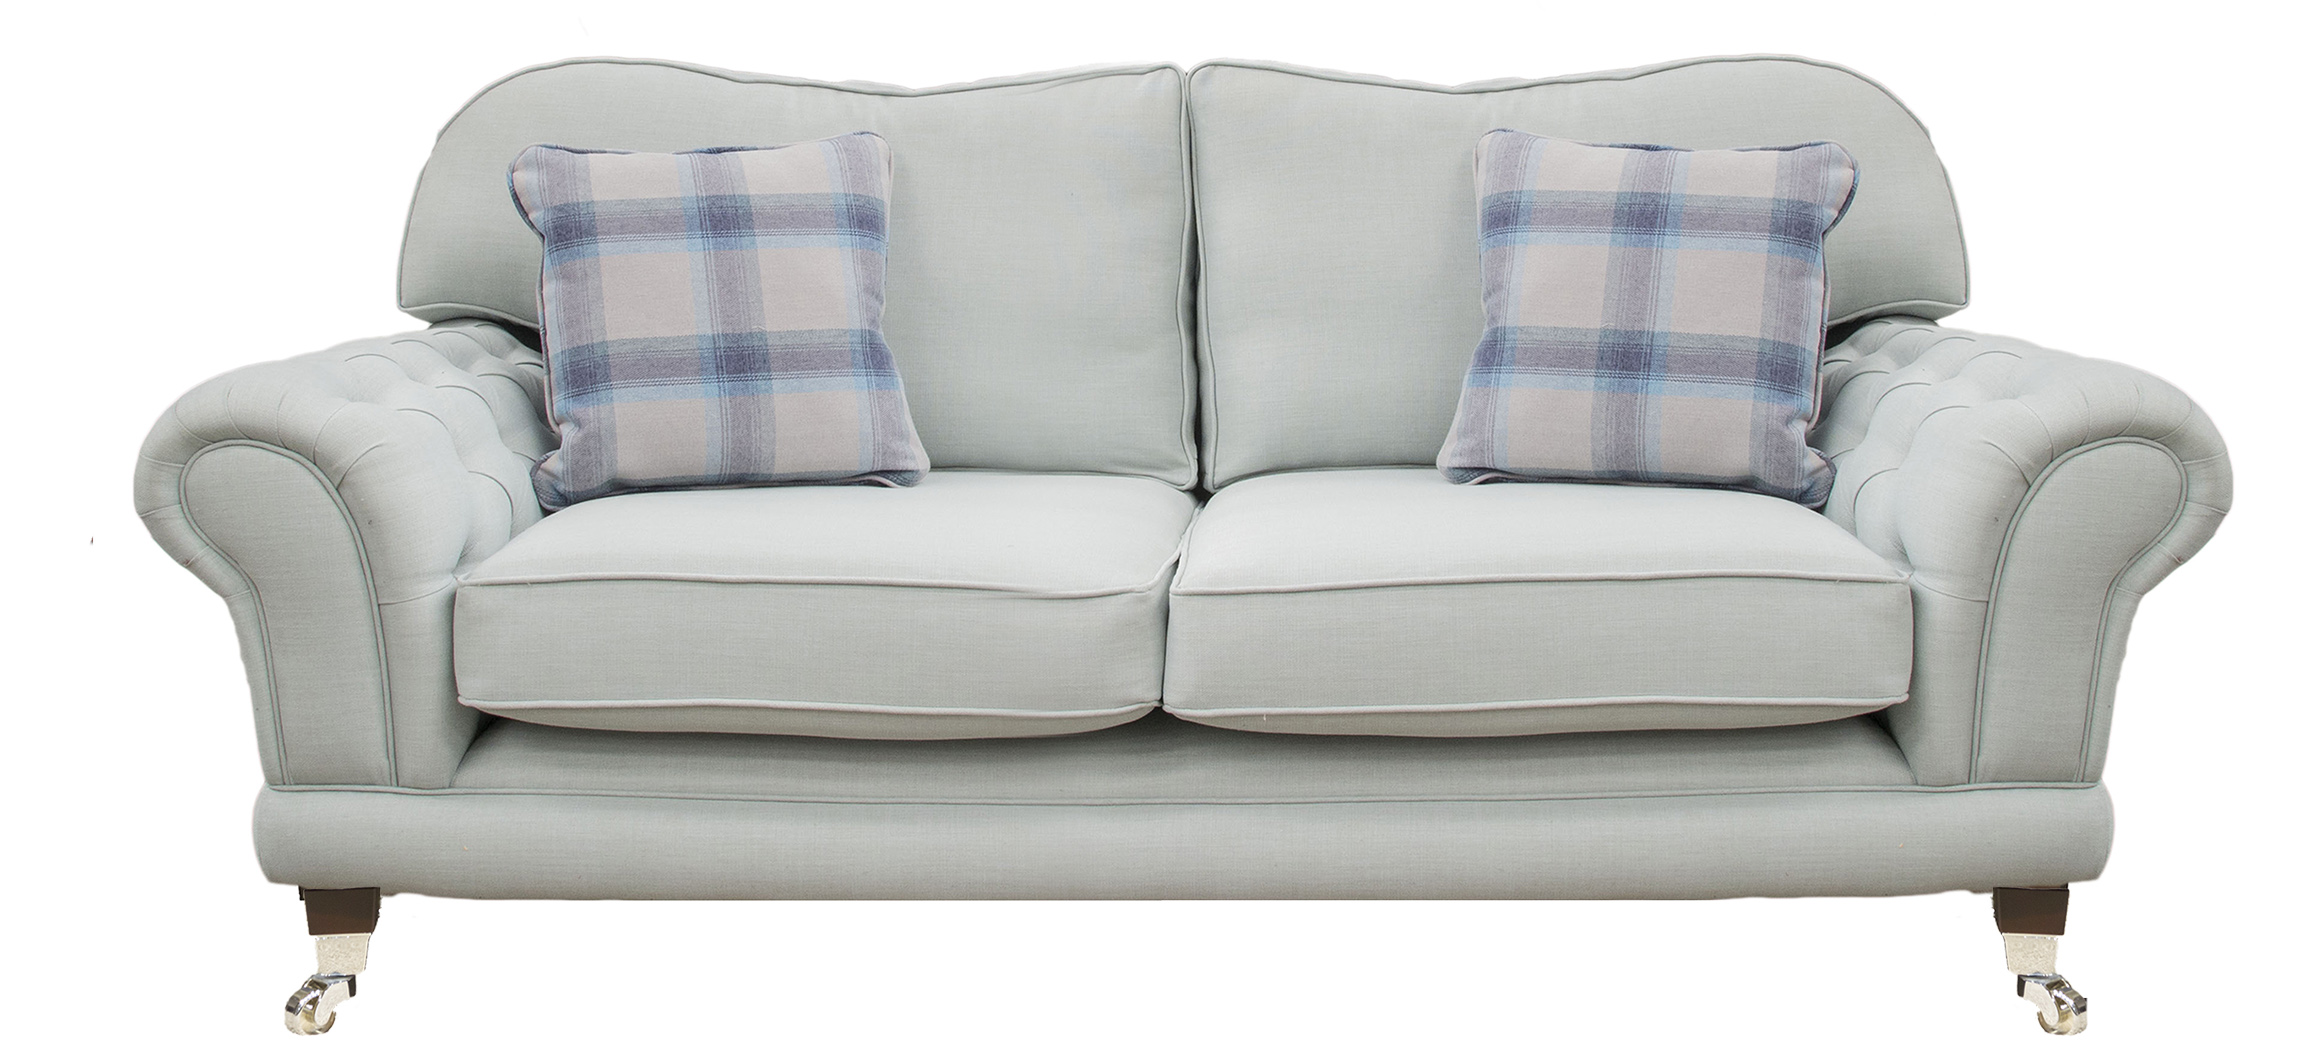 Alexandra Large Sofa With Deep Button Arms in Fontington Turin219 Duck Egg